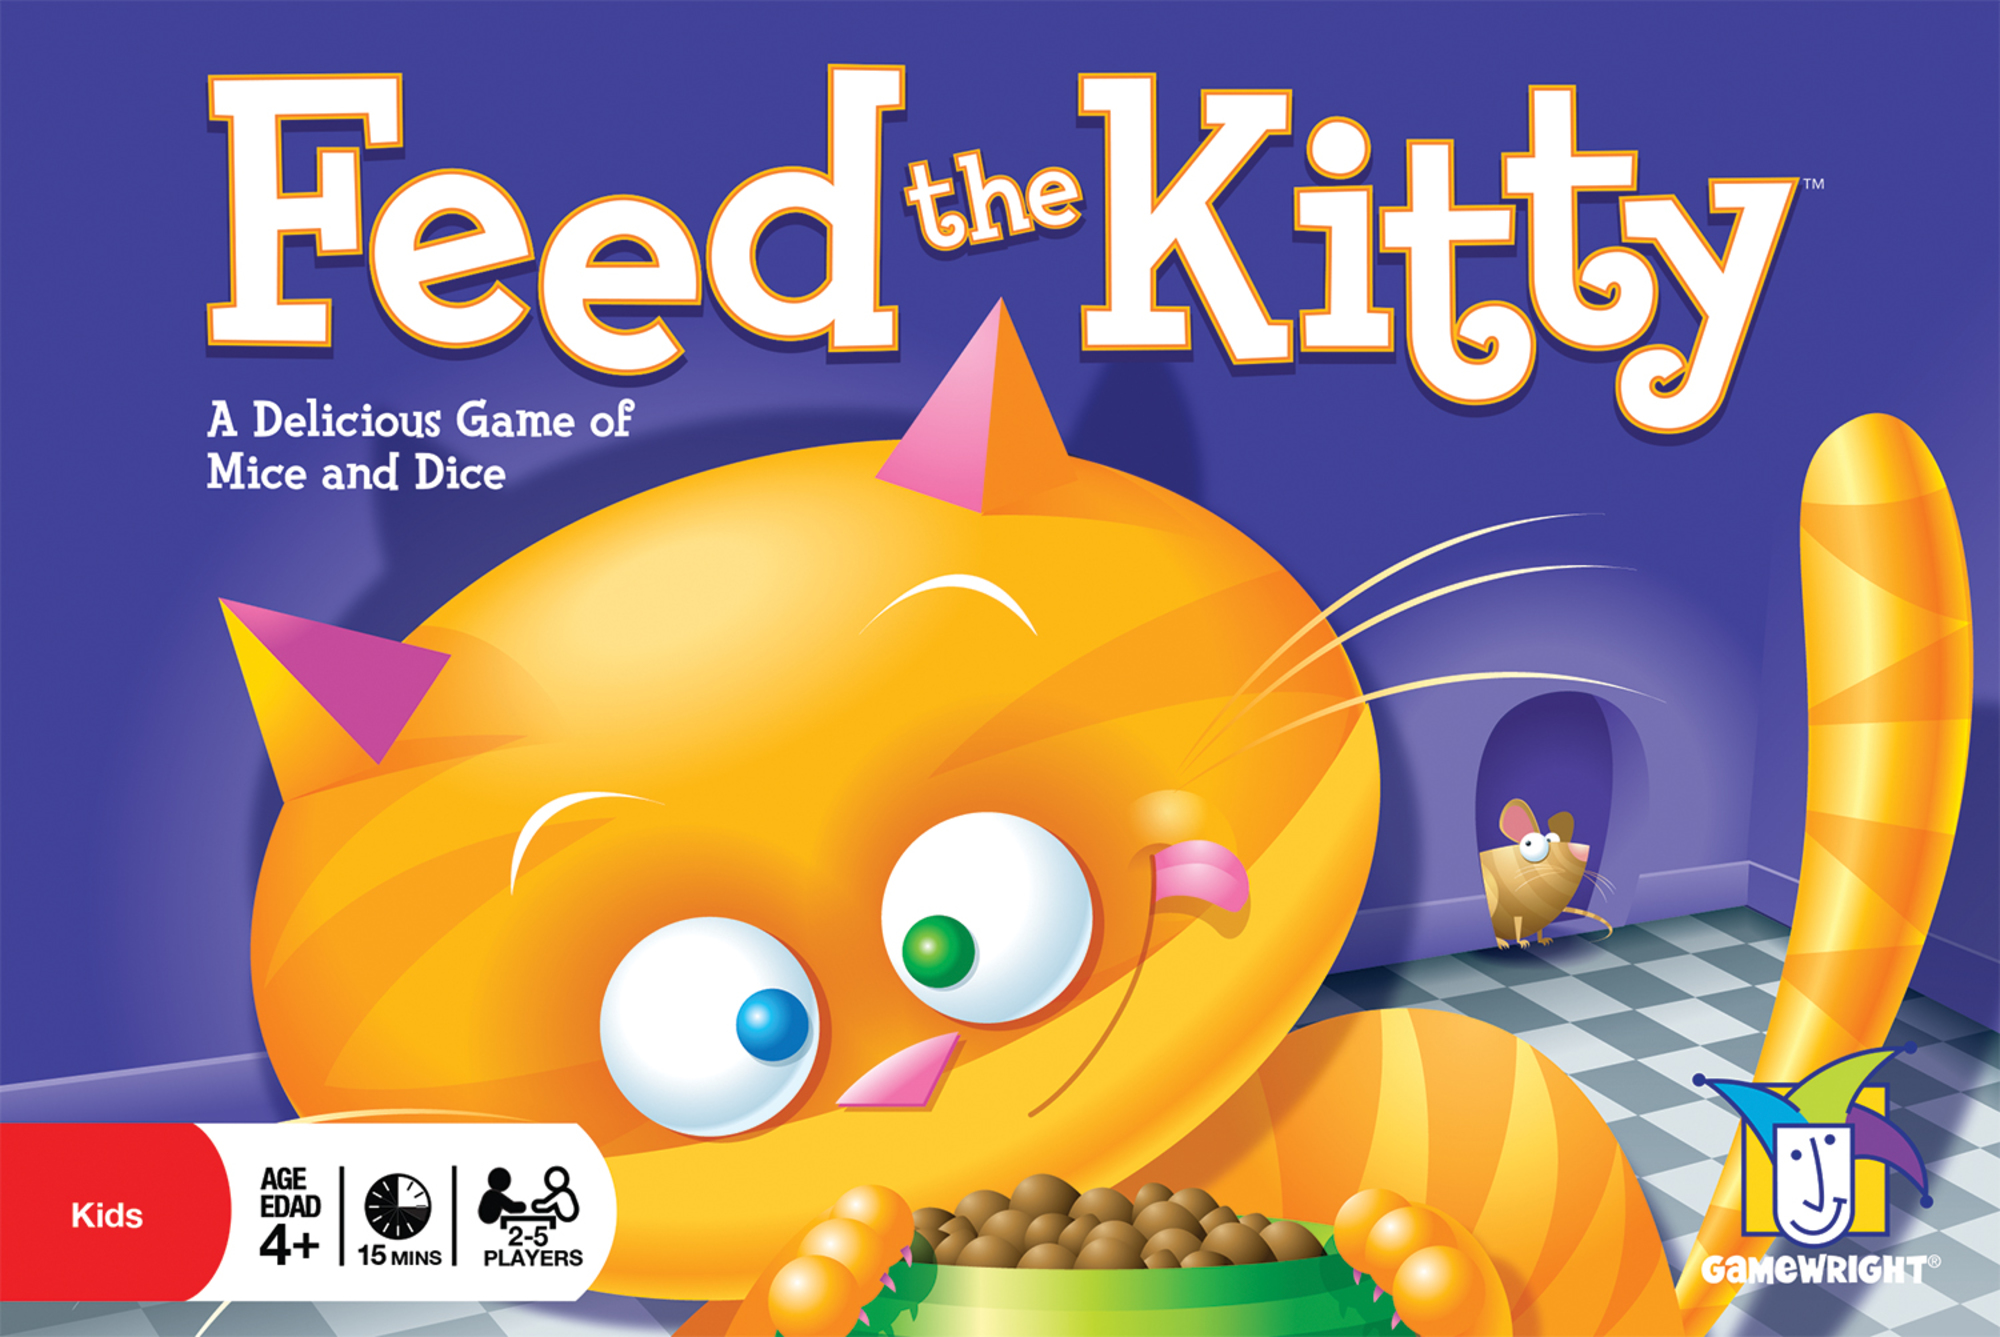 Feed the KittyTM